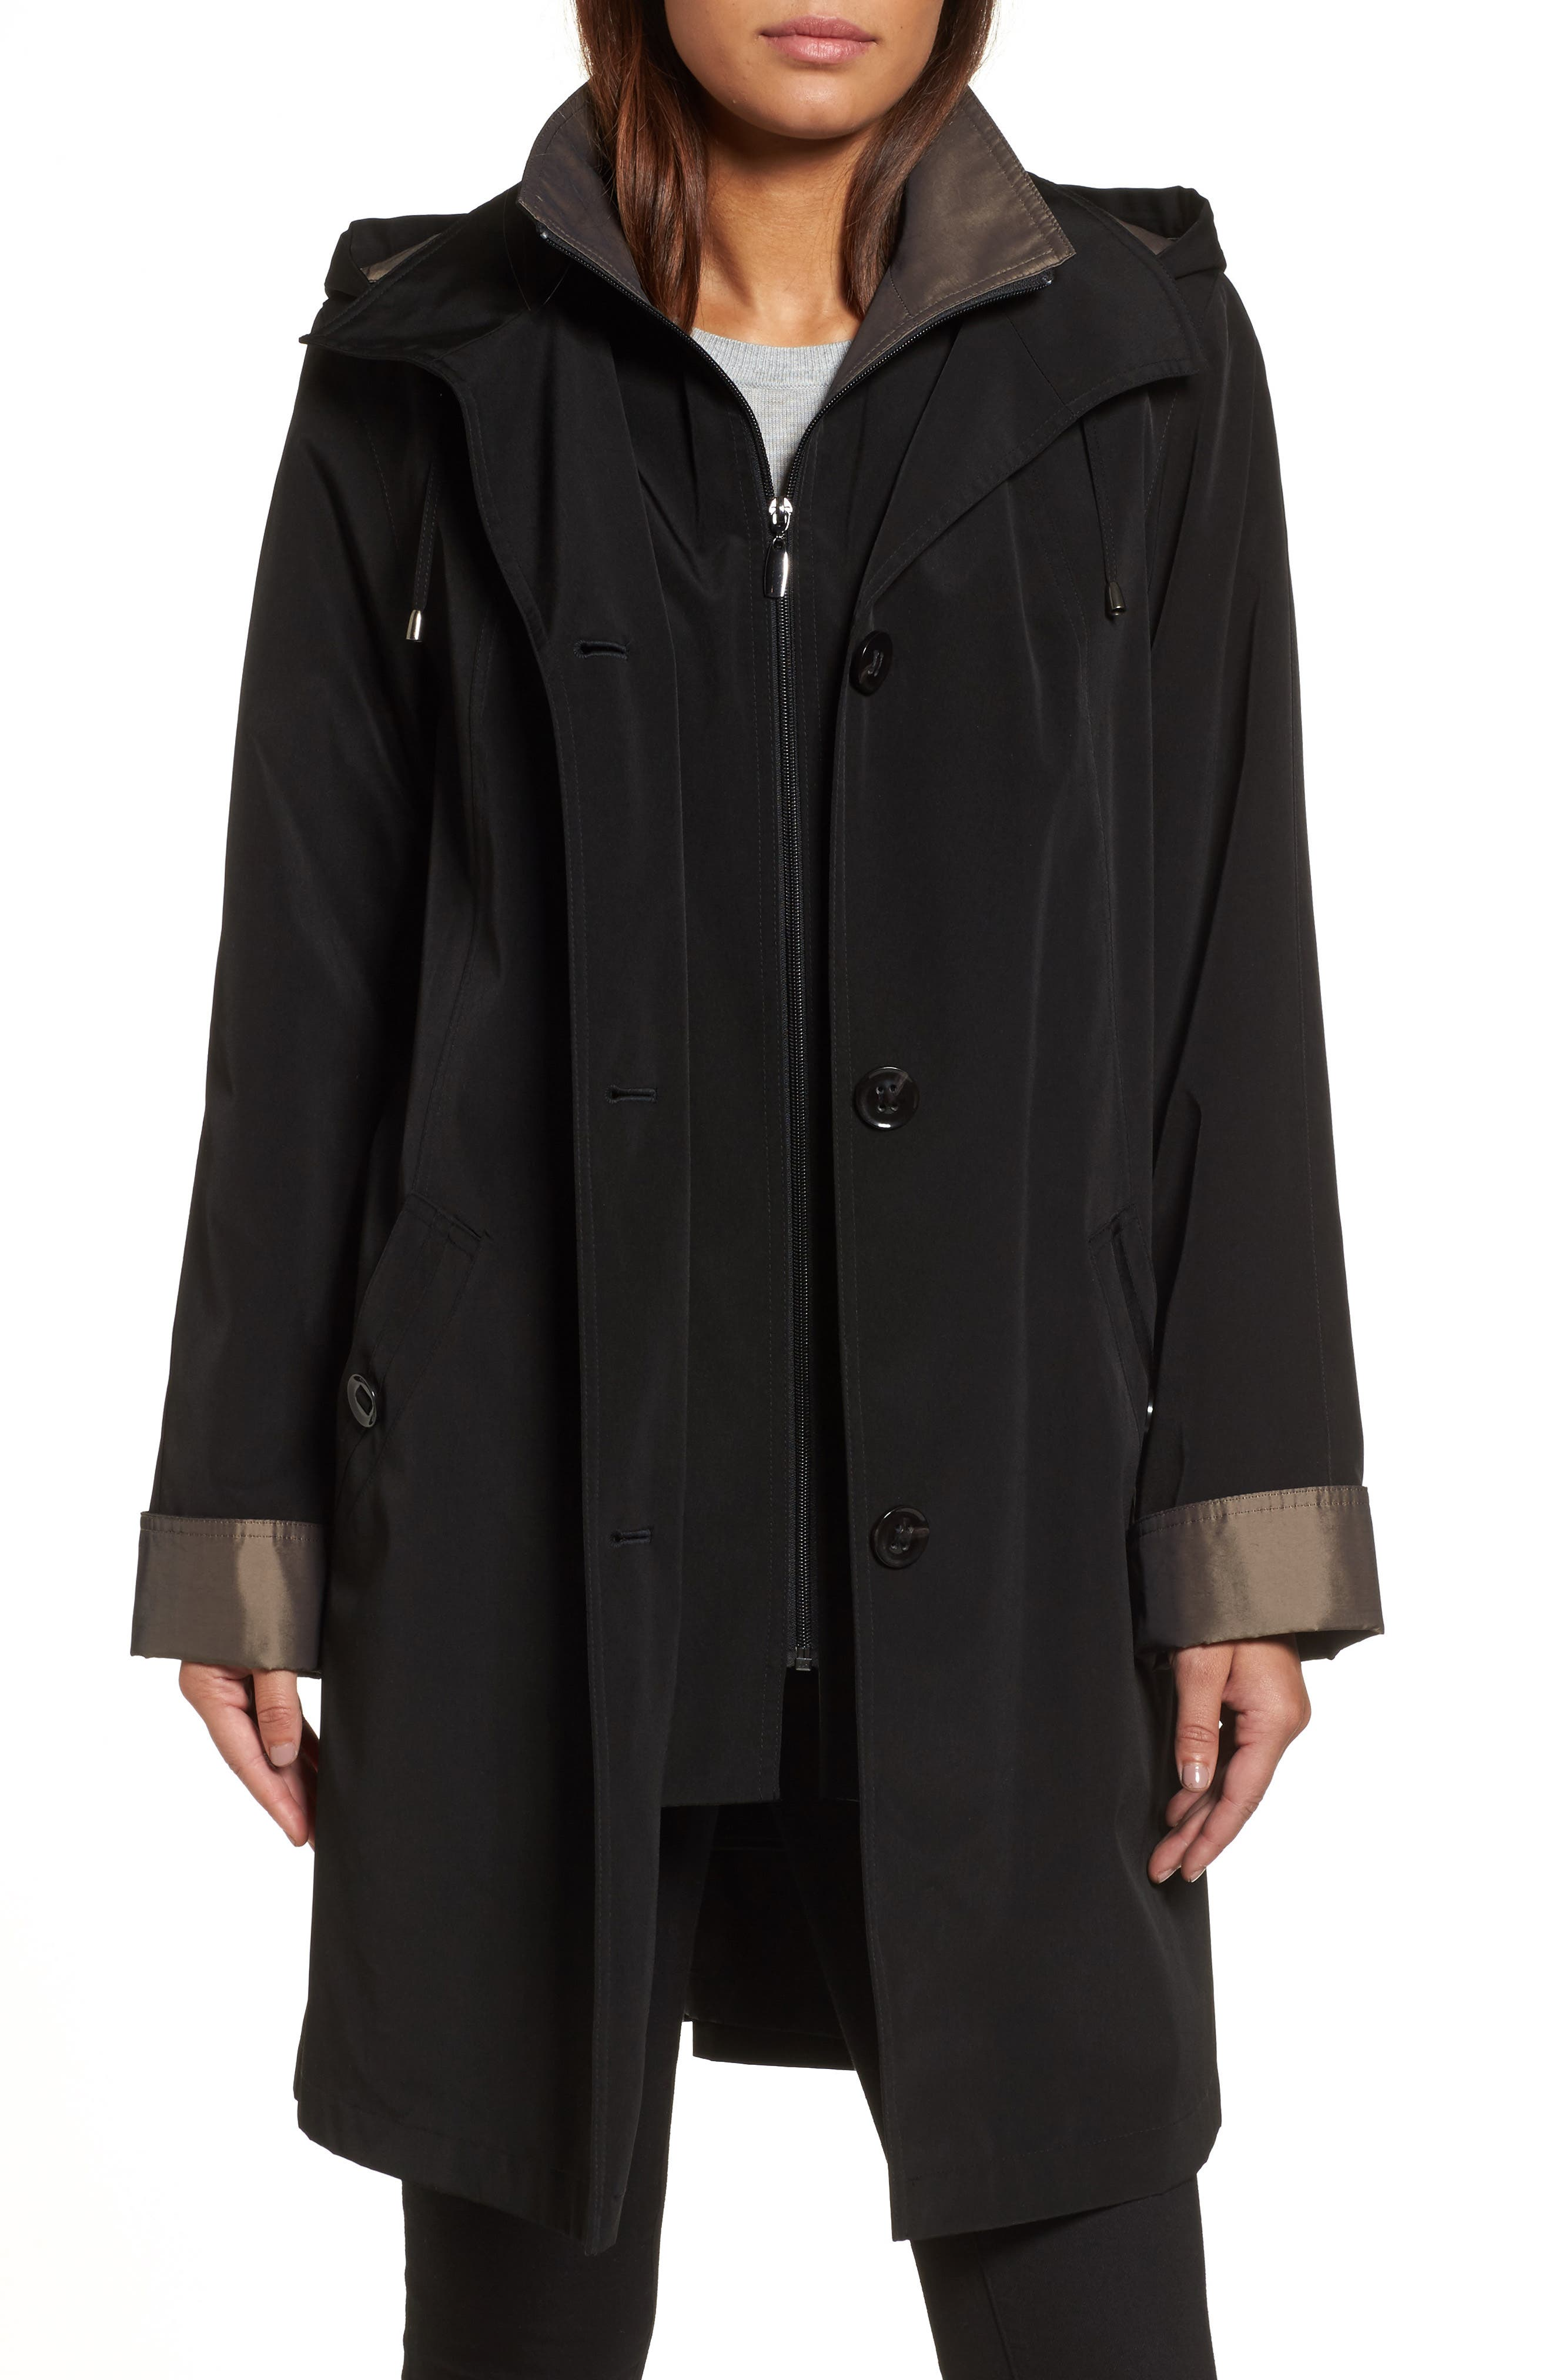 Alternate Image 1 Selected - Gallery A-Line Raincoat with Detachable Hood & Liner (Online Exclusive)